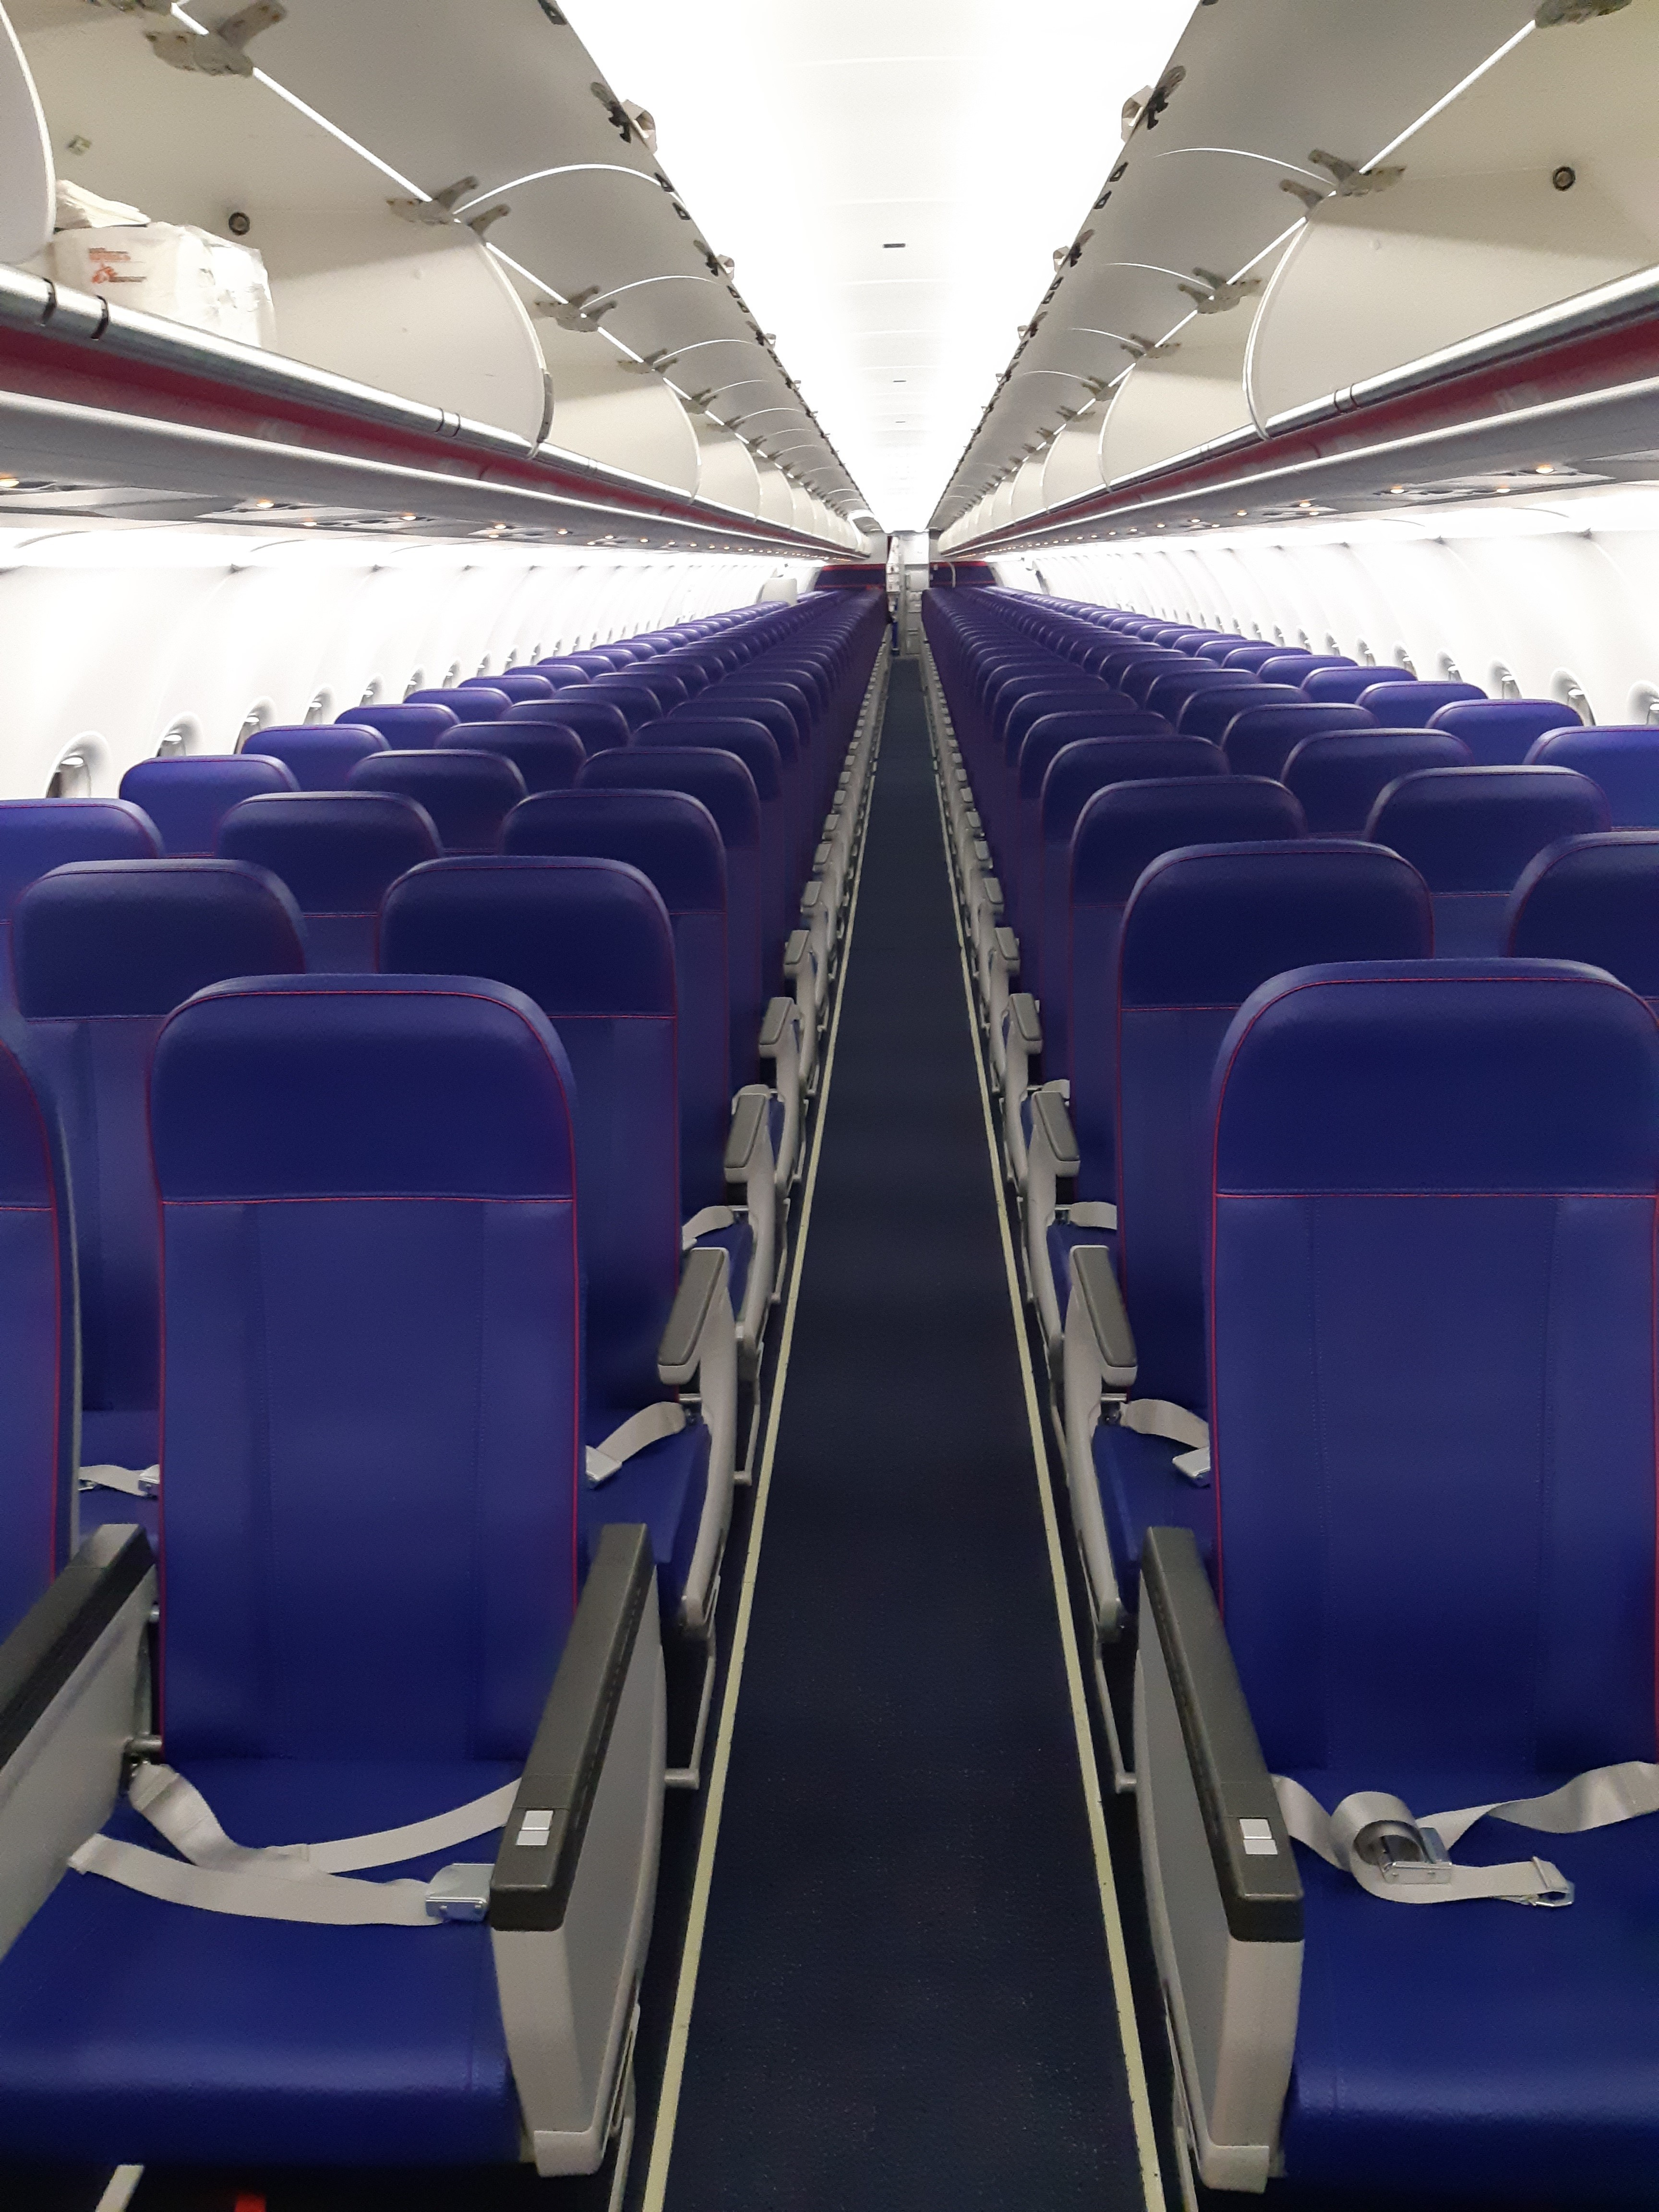 RECARO aircraft seating takes flight on Wizz Air's brand-new Airbus A321neo